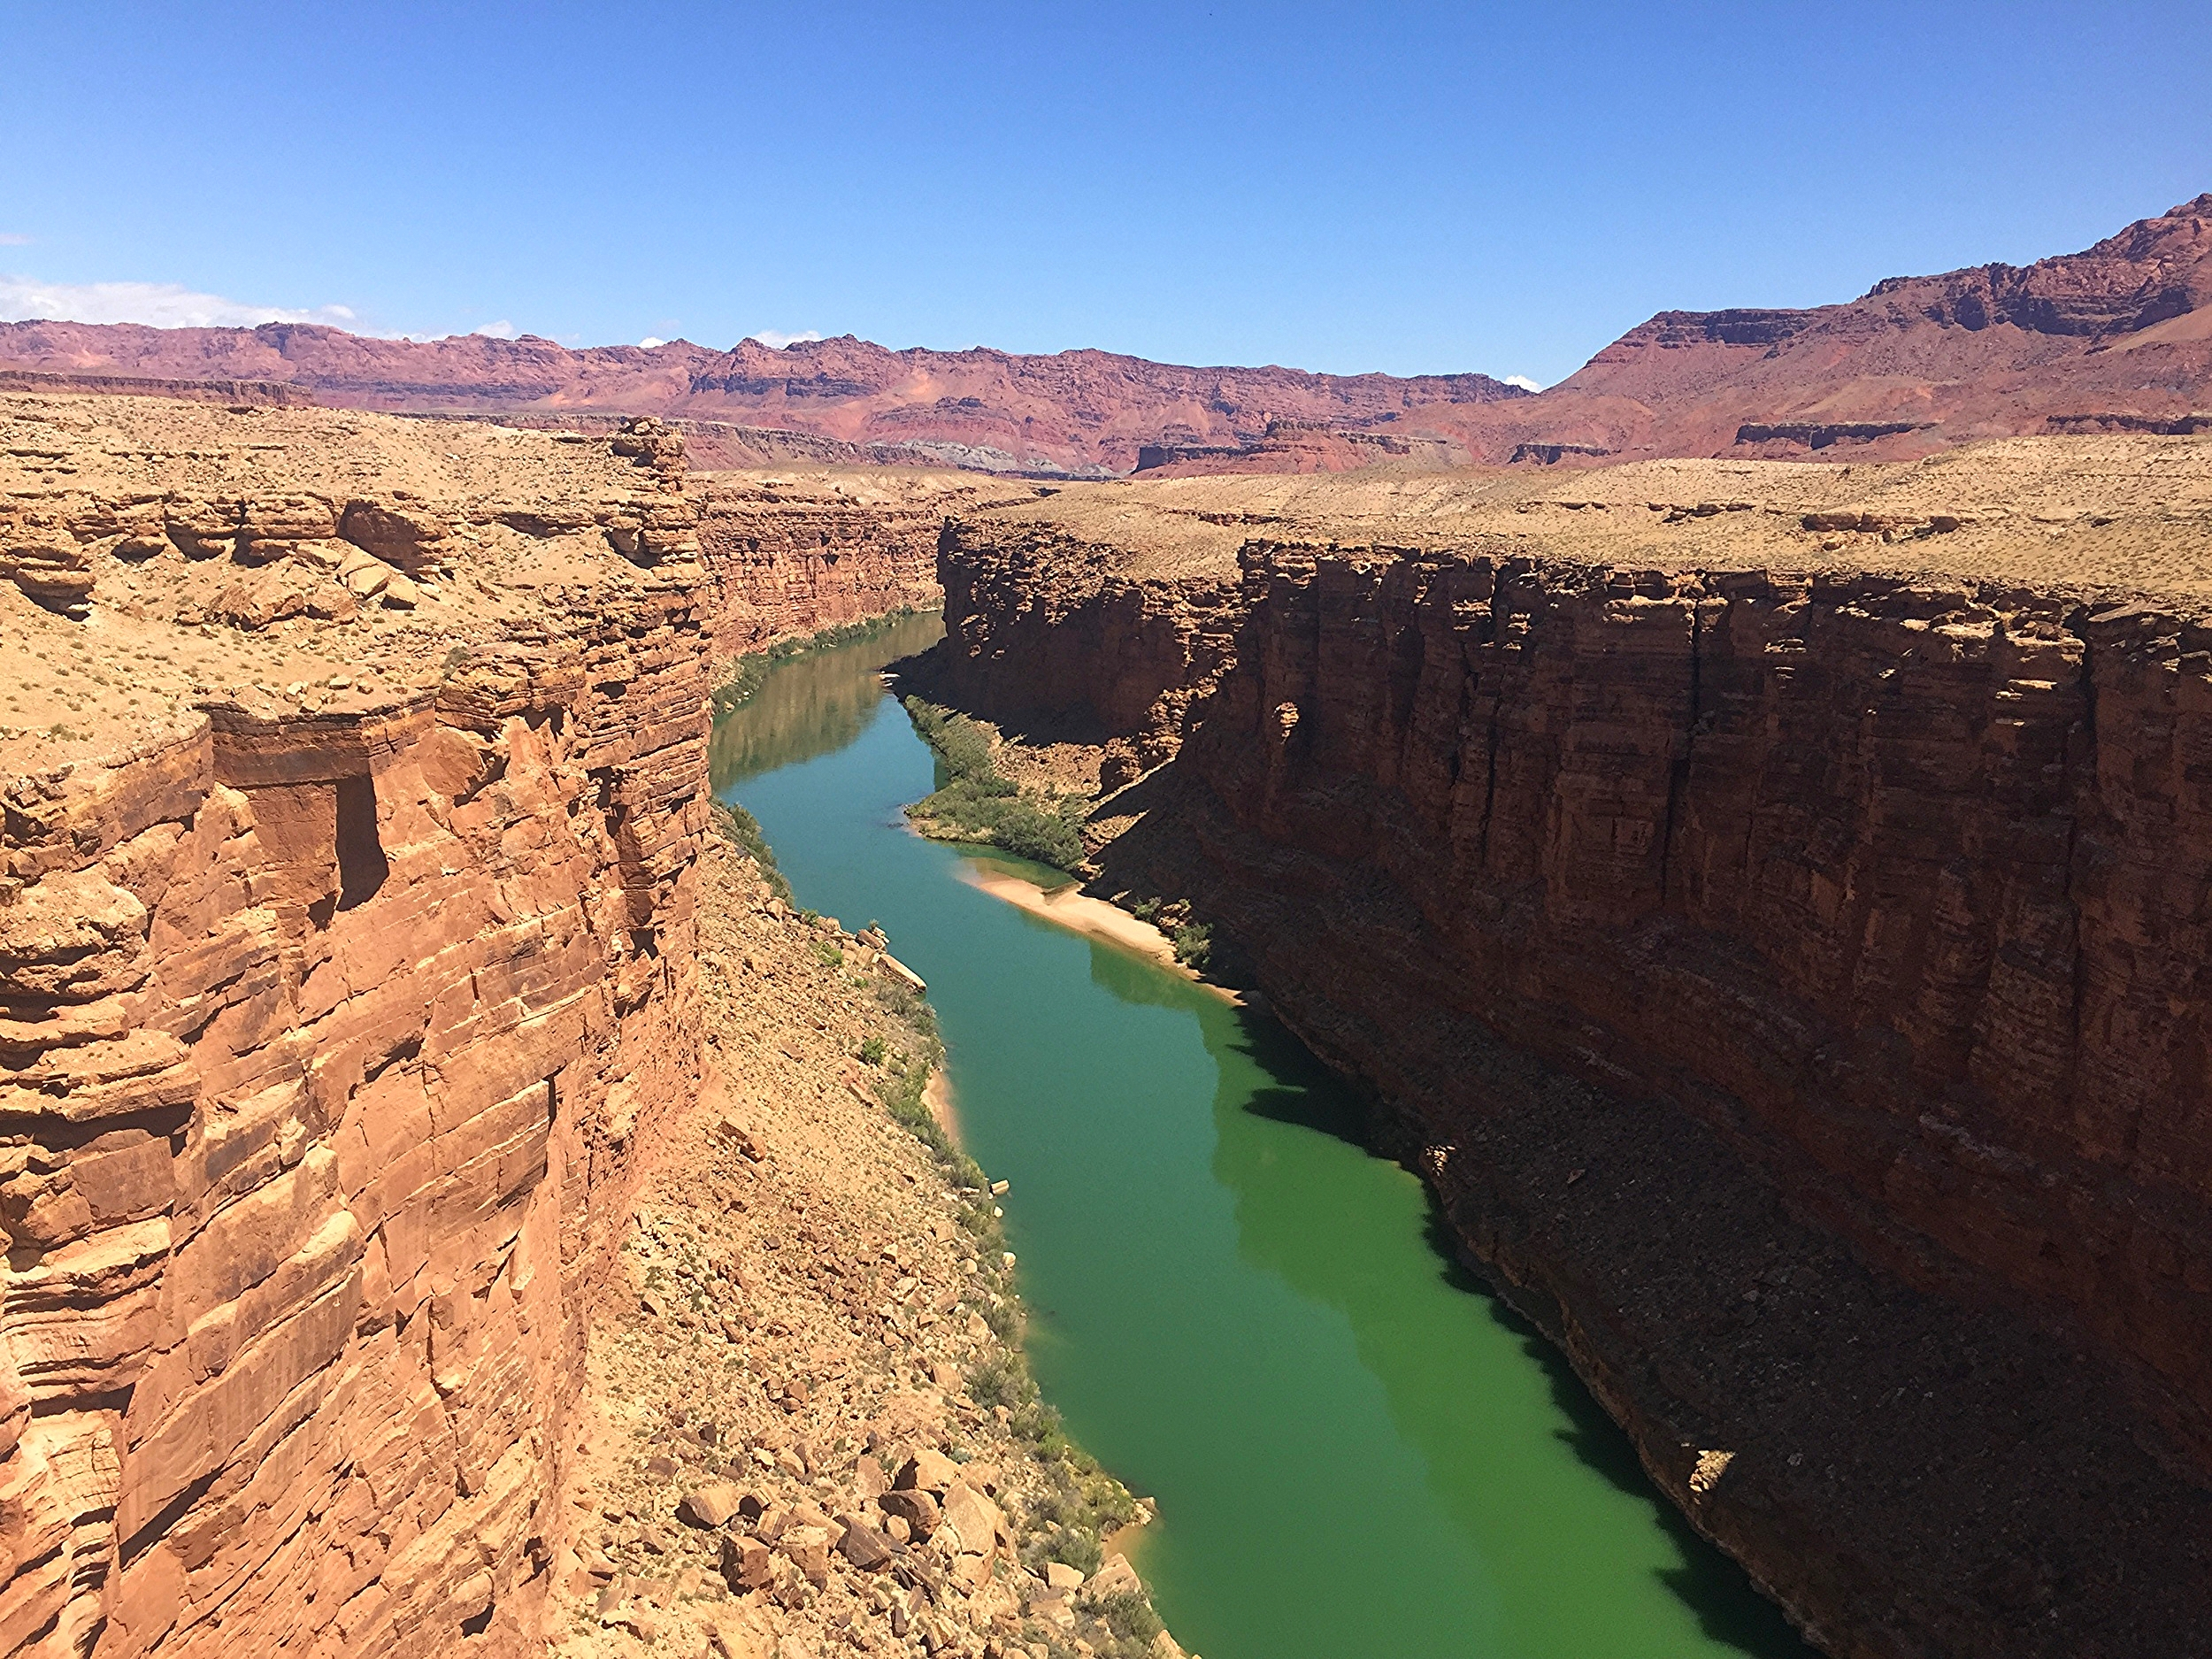 Colorado River on the north side of the Navajo Bridge